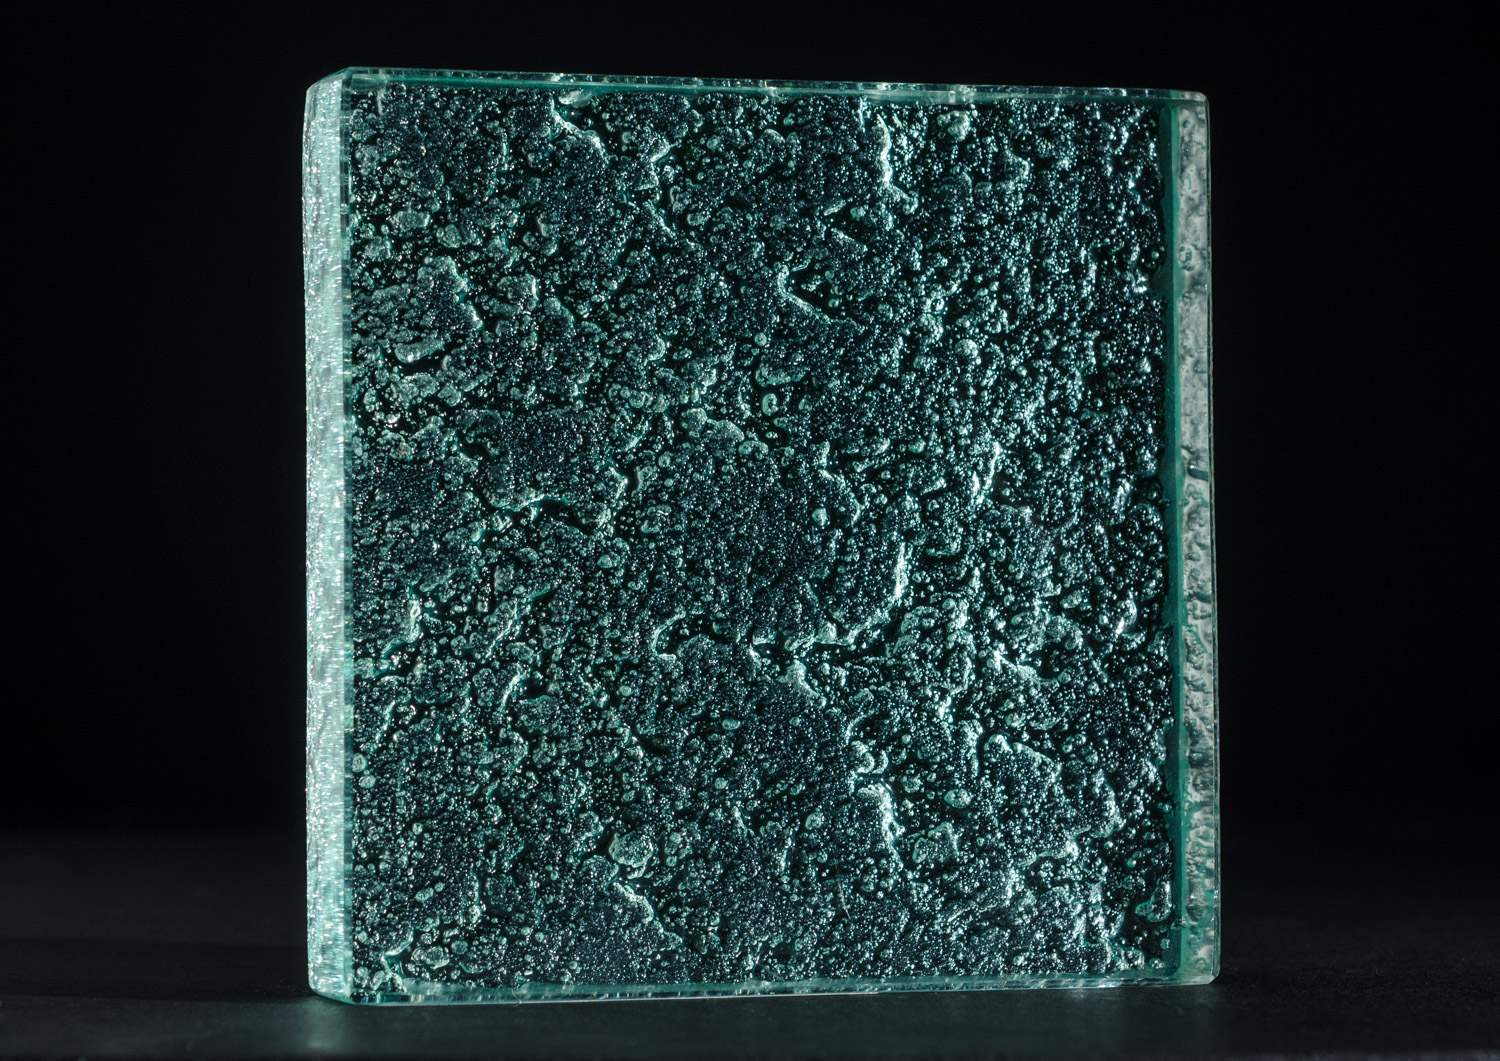 Jockimo ThickGlass™ Natural texture